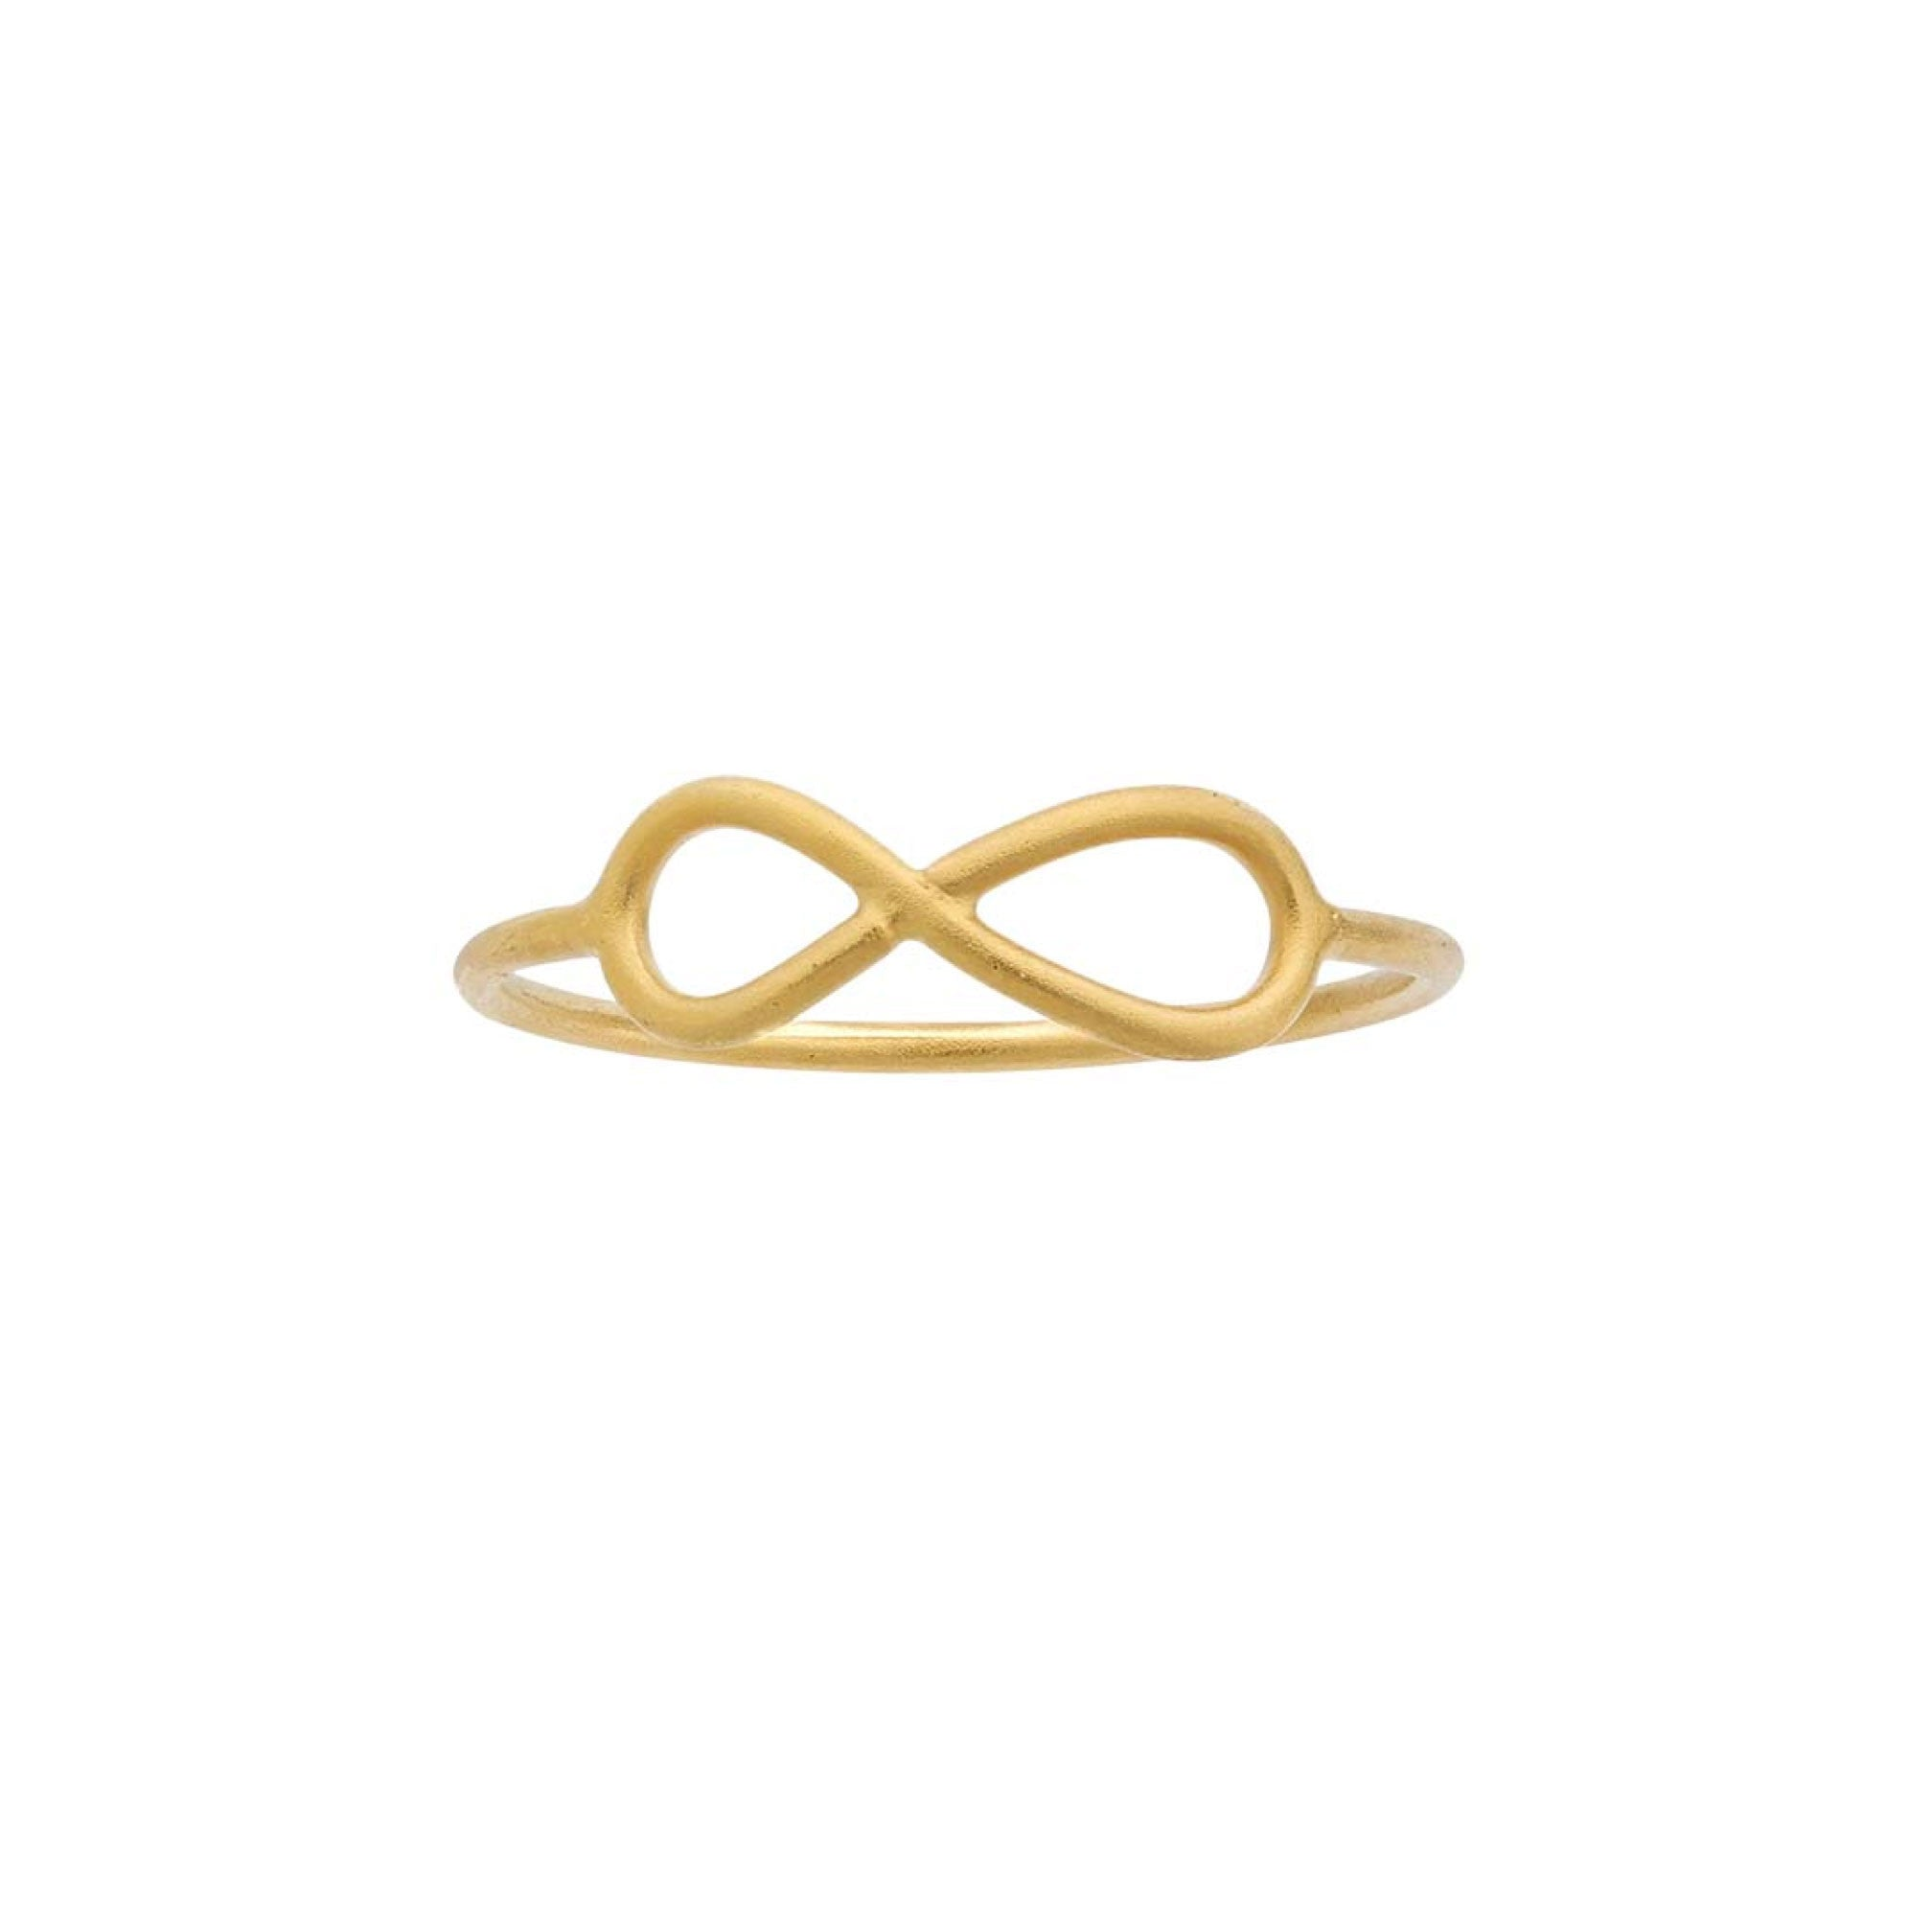 Infinity ring tangerine jewelry shop for Infinity ring jewelry store